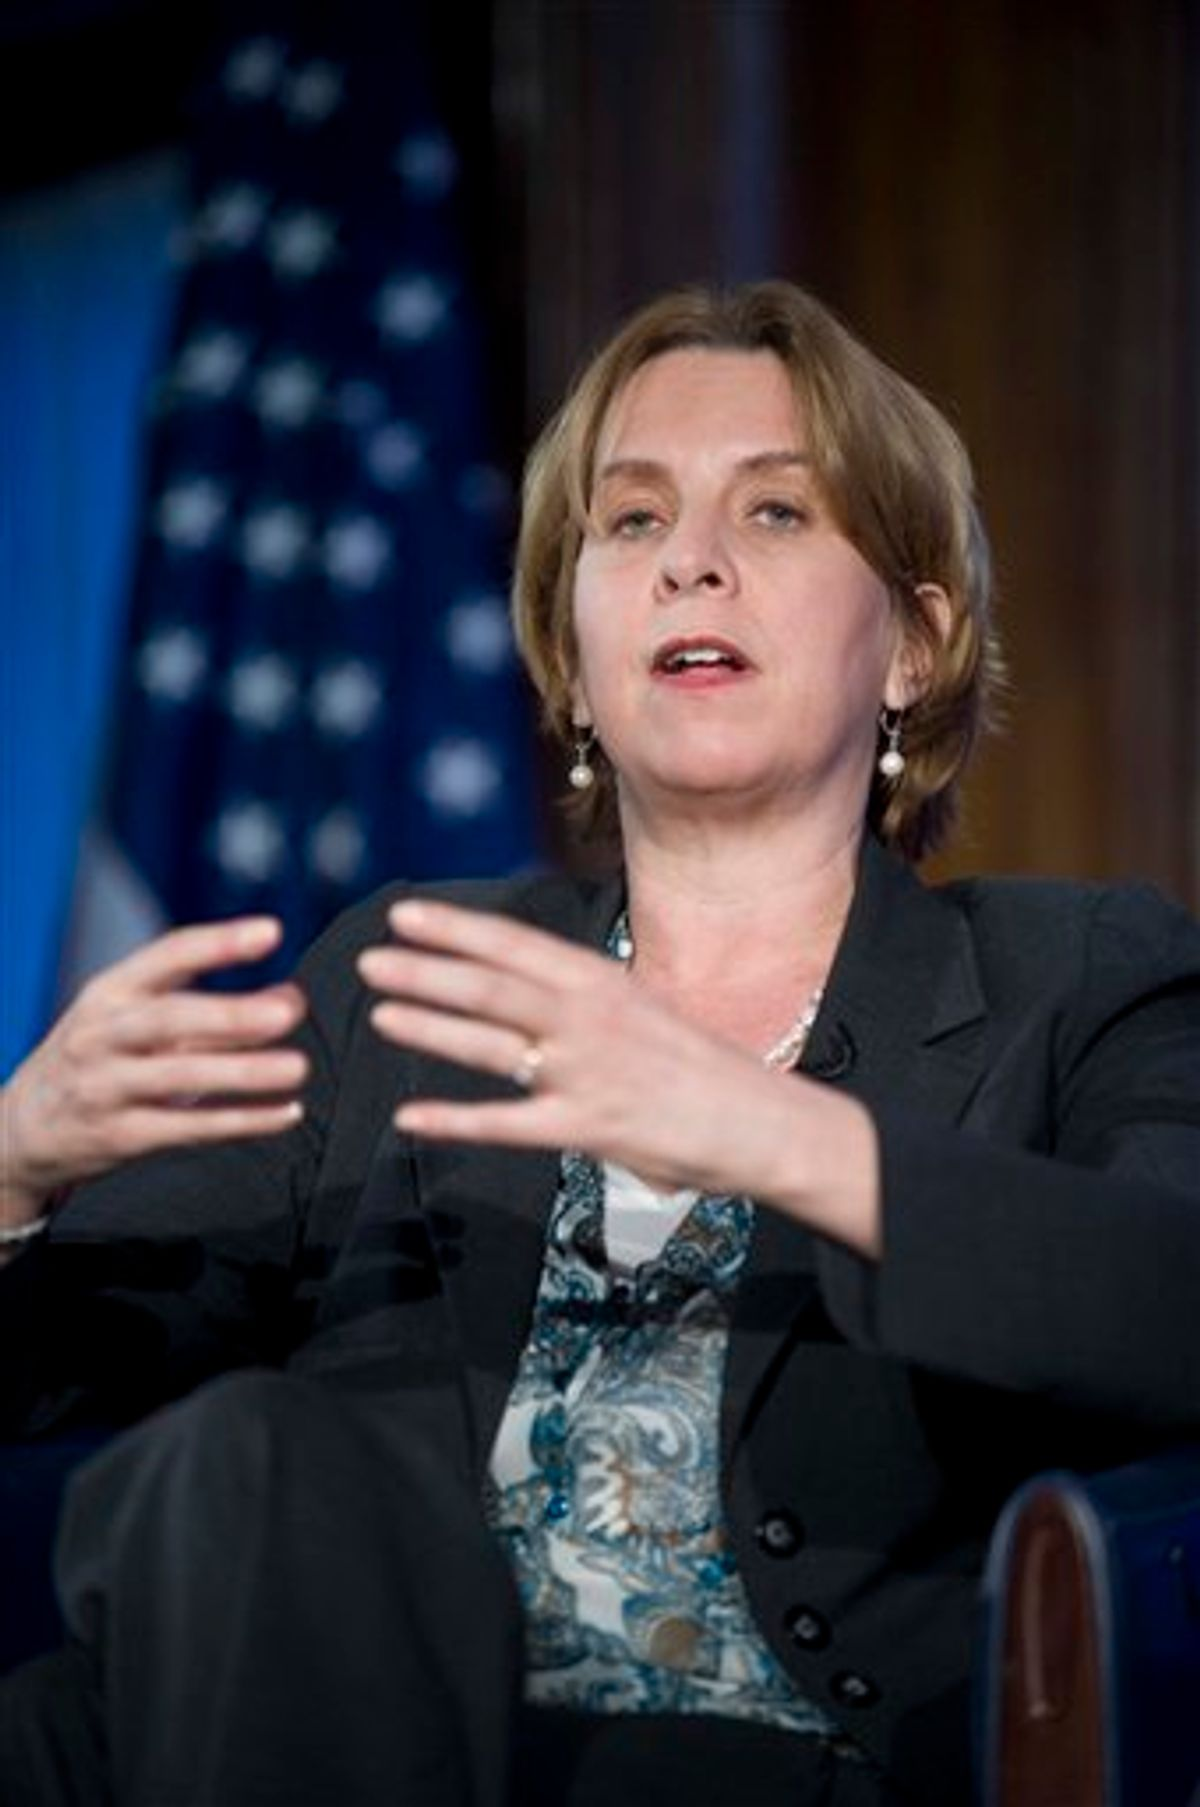 ** FILE ** In this March 24, 2009 file photo, President and CEO of NPR Vivian Schiller appears on The Kalb Report at the National Press Club in Washington.  NPR says CEO Vivian Schiller resigns in aftermath of fundraiser's remarks on hidden video.  (AP Photo/Kevin Wolf)   (AP)